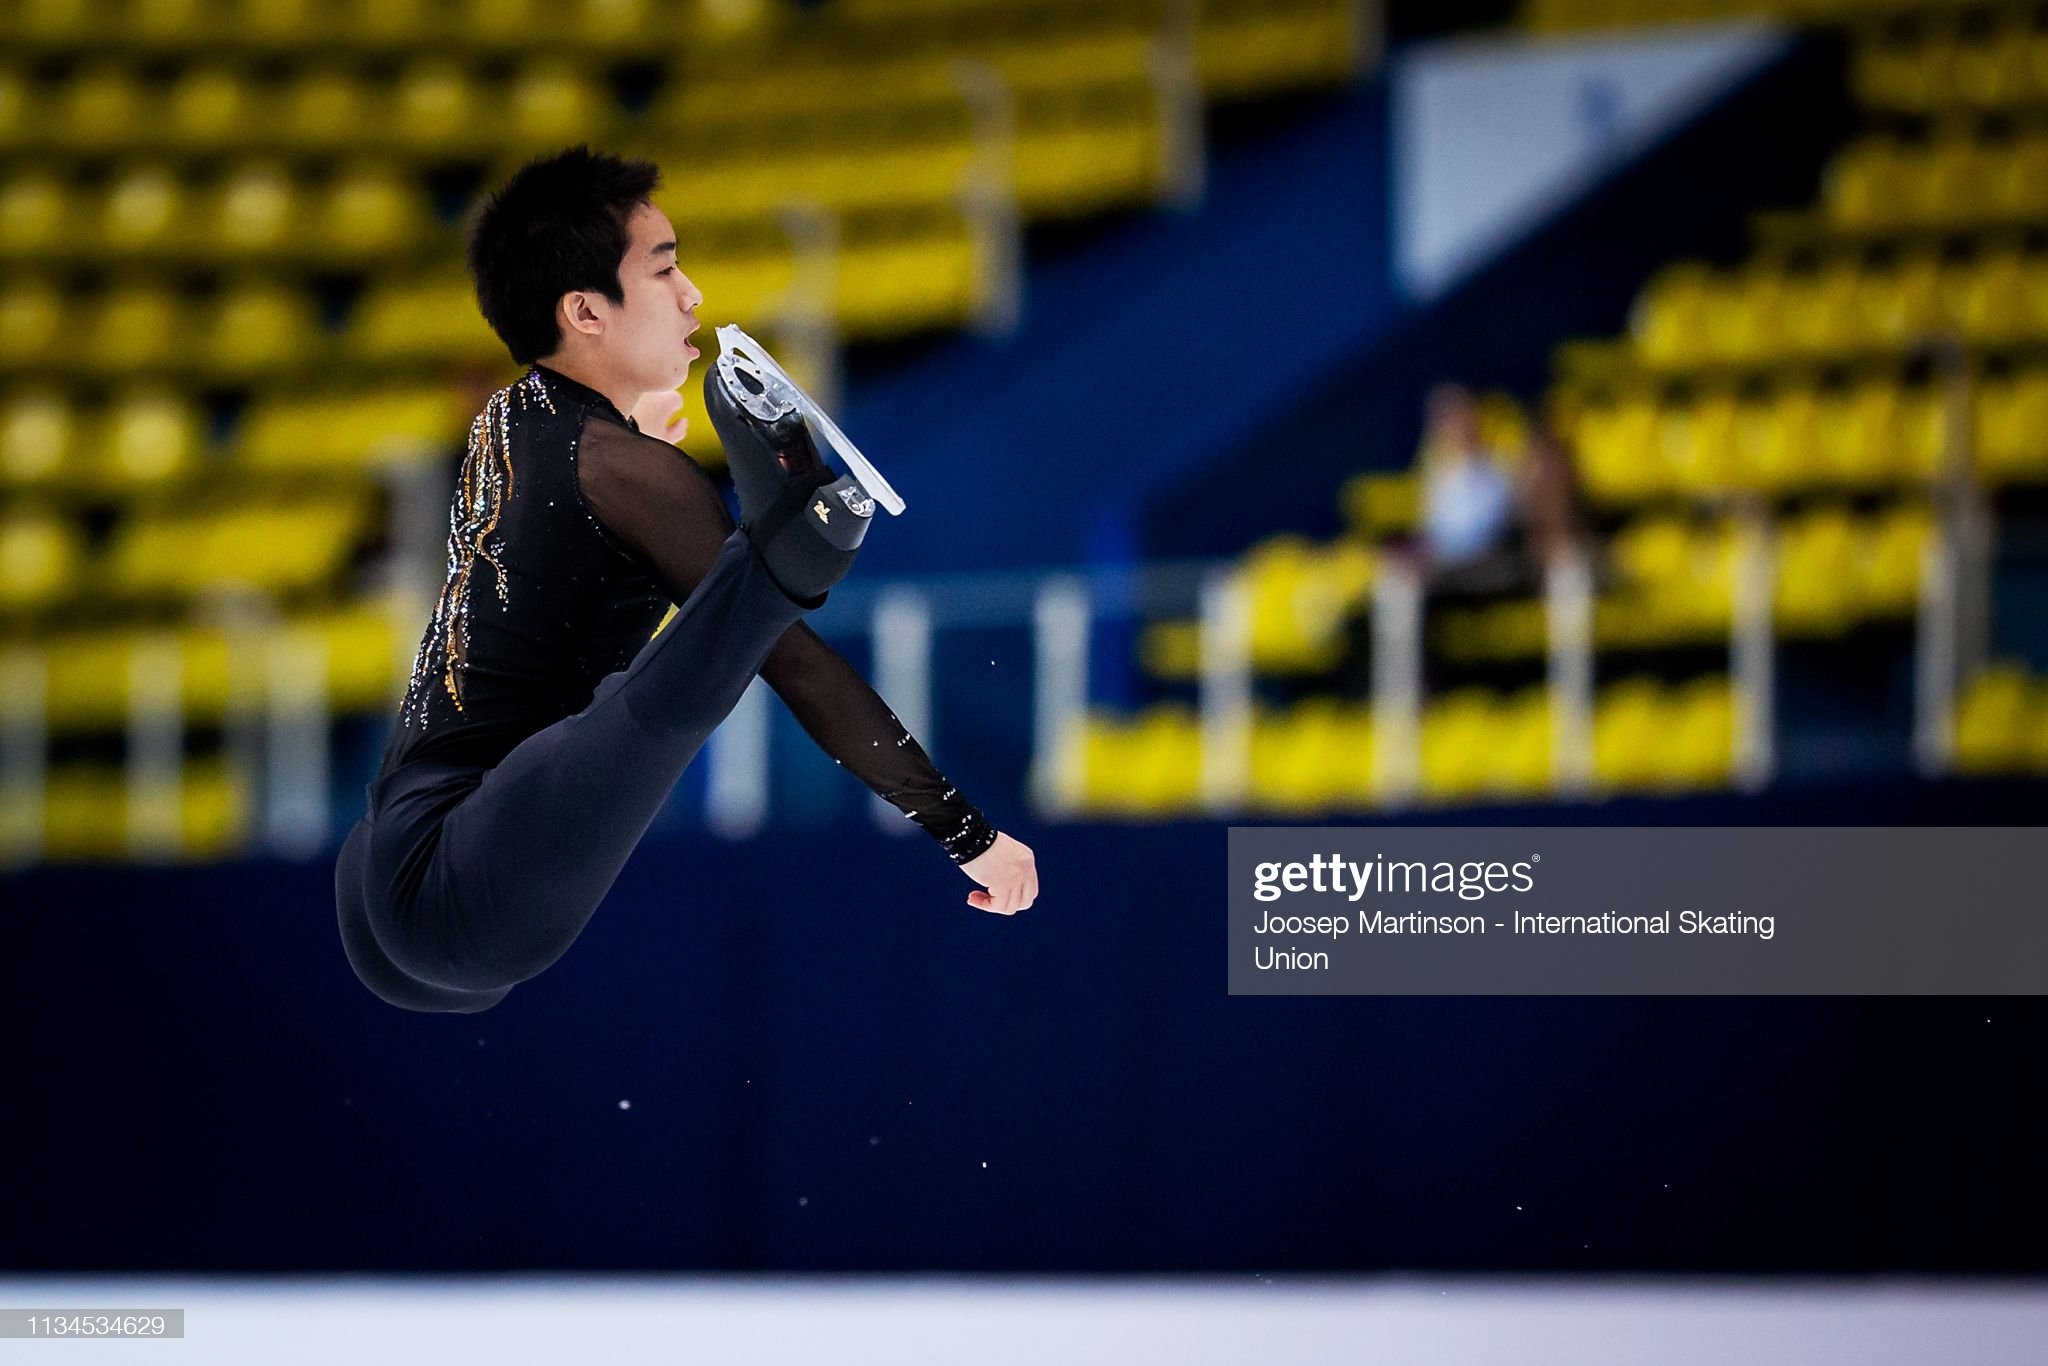 Команда США - Страница 32 Tomoki-hiwatashi-of-the-united-states-competes-in-the-junior-mens-picture-id1134534629?s=2048x2048